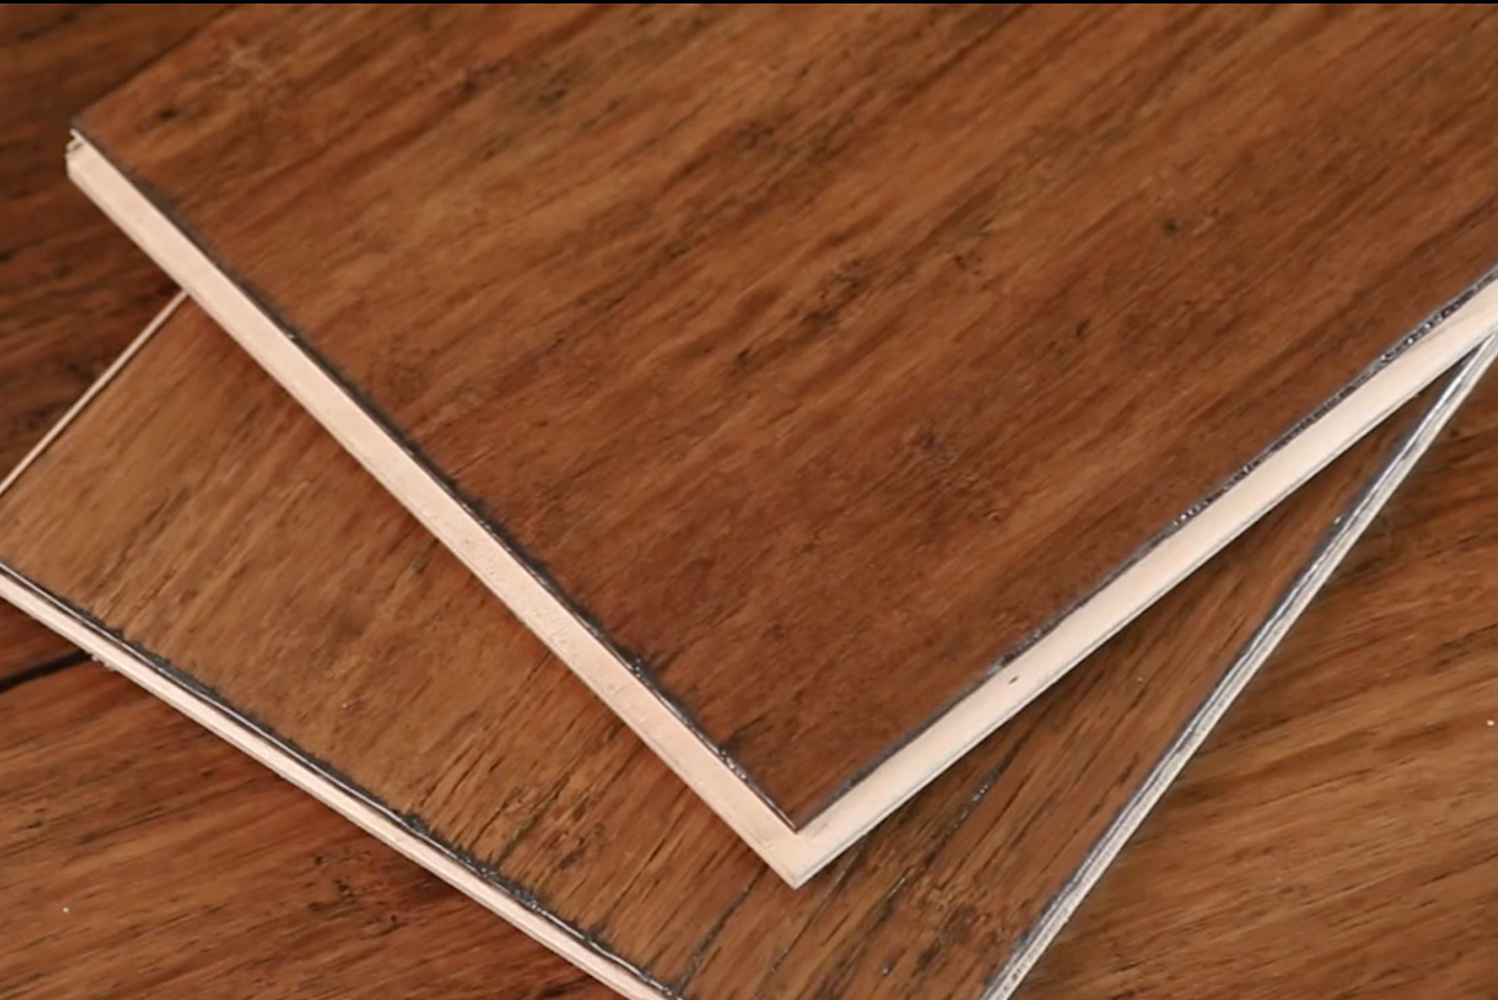 Cali Bamboo added nine new floors to its Eco-Engineered bamboo flooring collection.